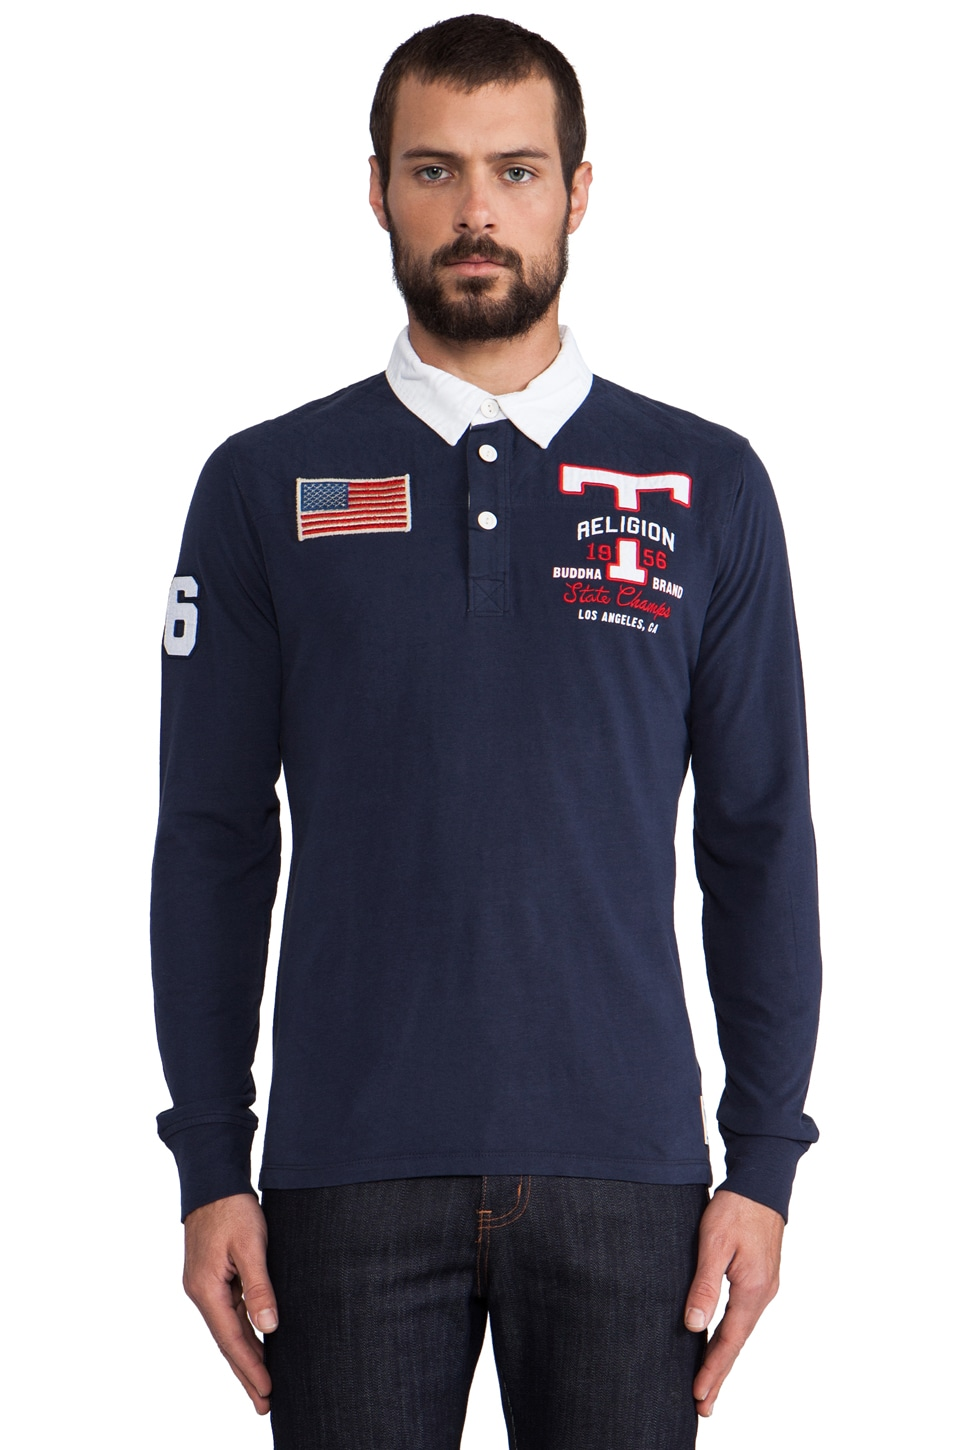 True Religion American Rugby Polo in Dark Navy